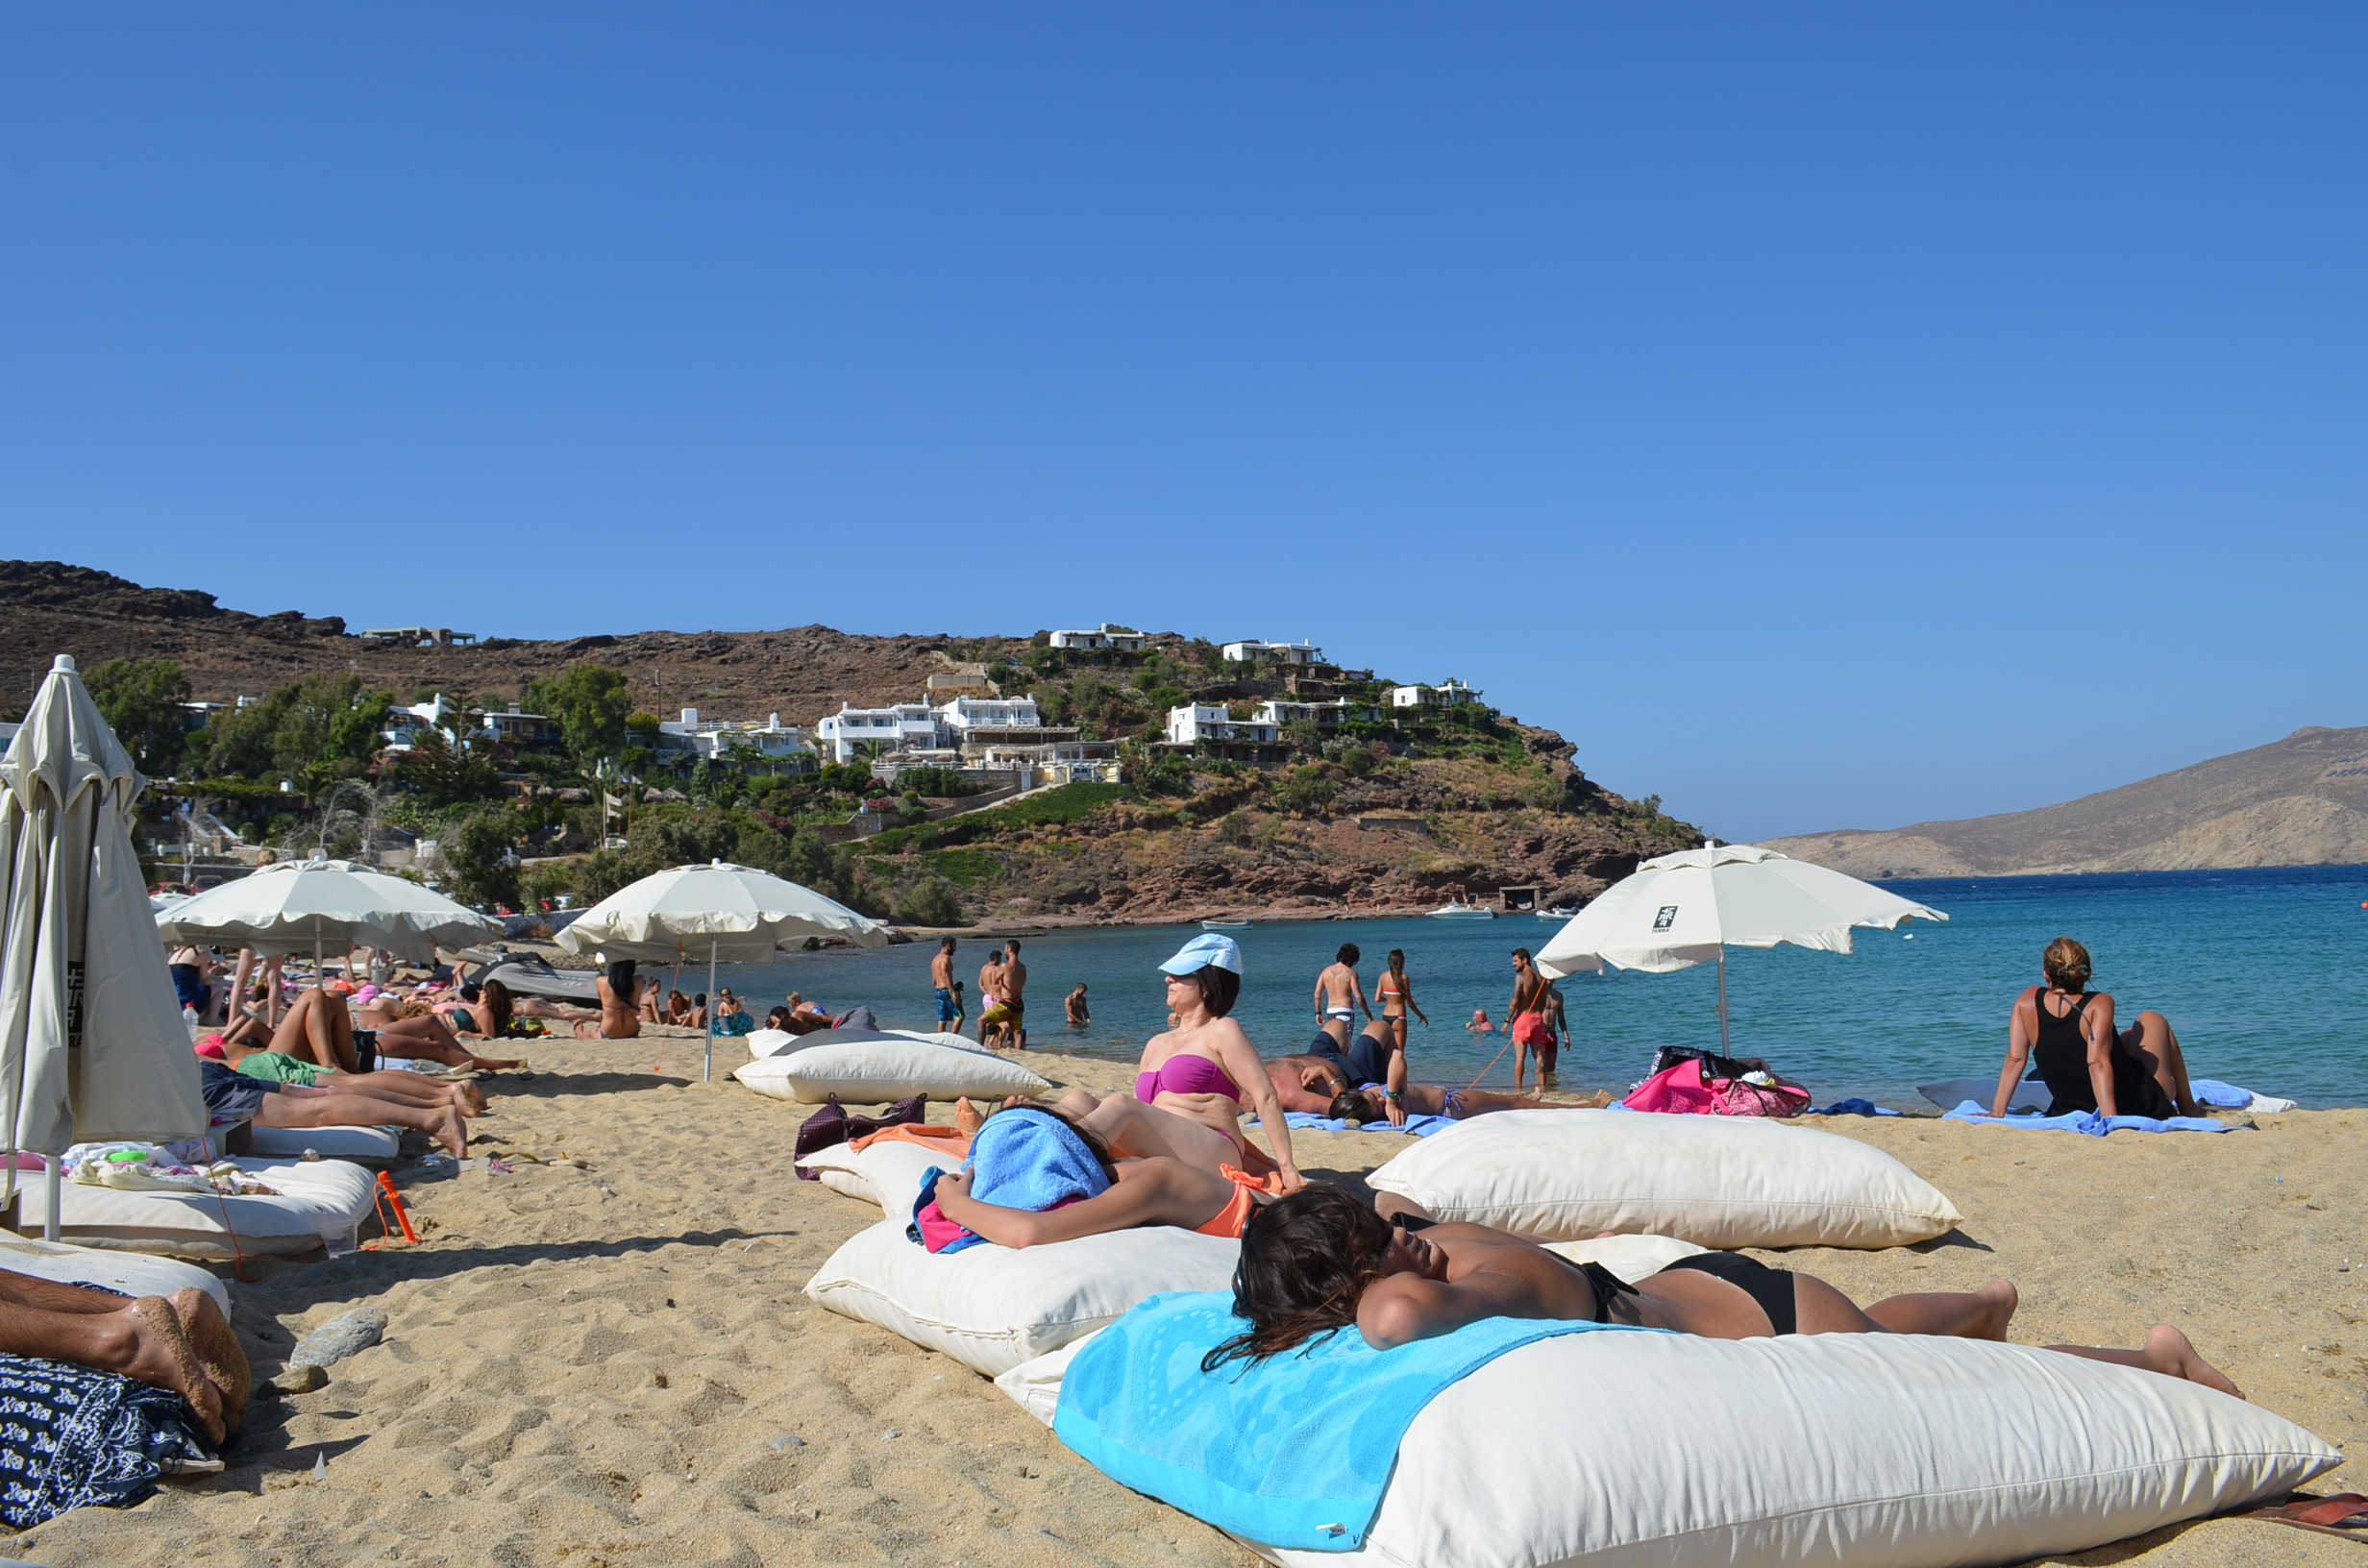 Best Island Beaches For Partying Mykonos St Barts: Fun Things To Do In Mykonos Island, Greece.